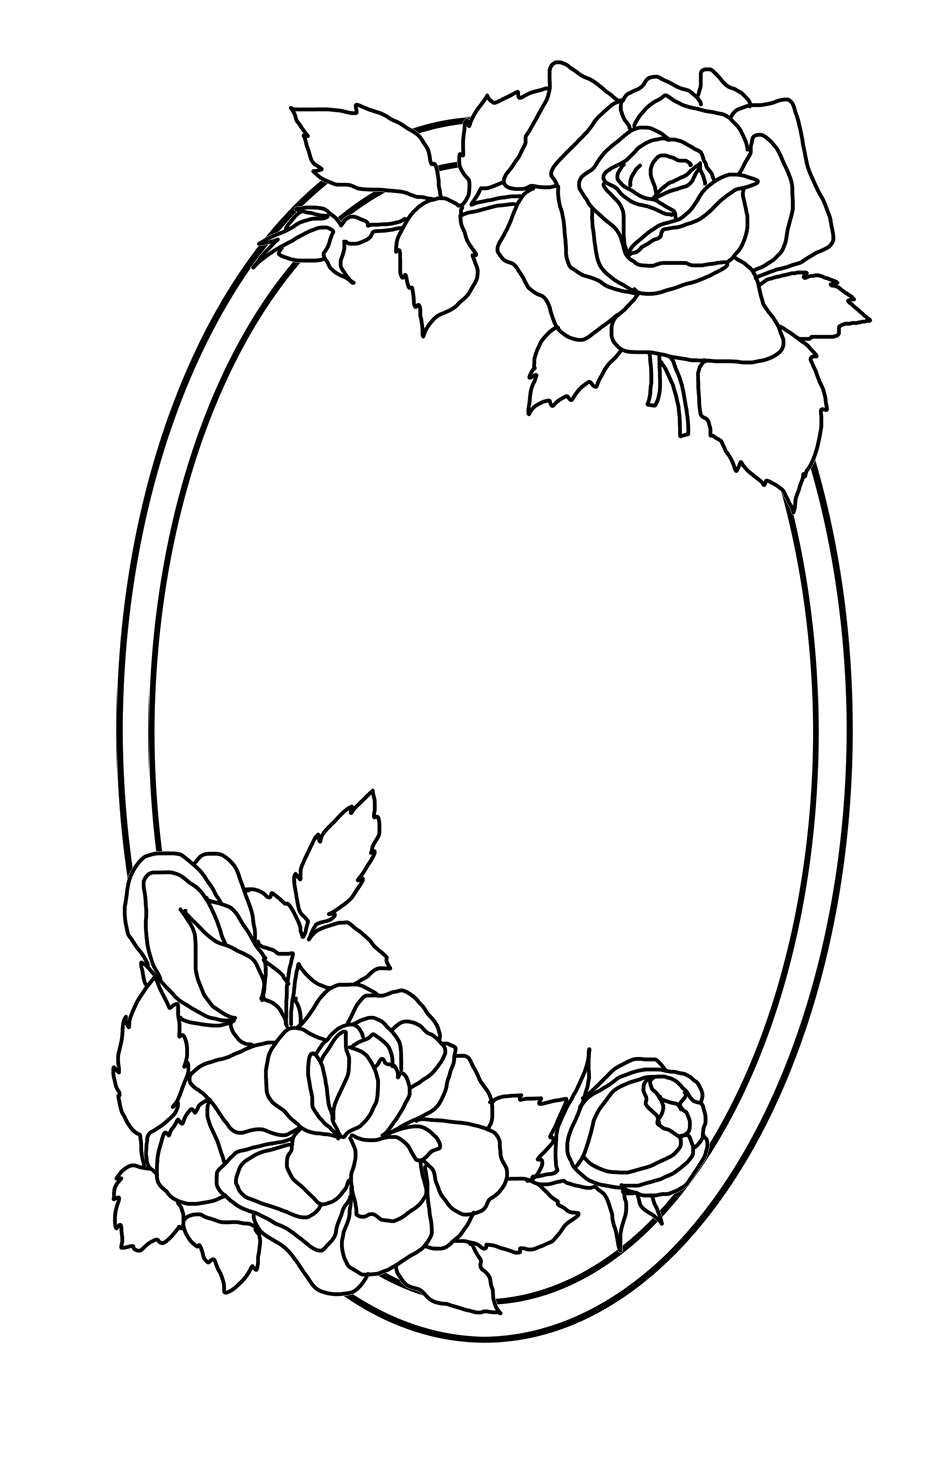 It is a picture of Shocking roses coloring book